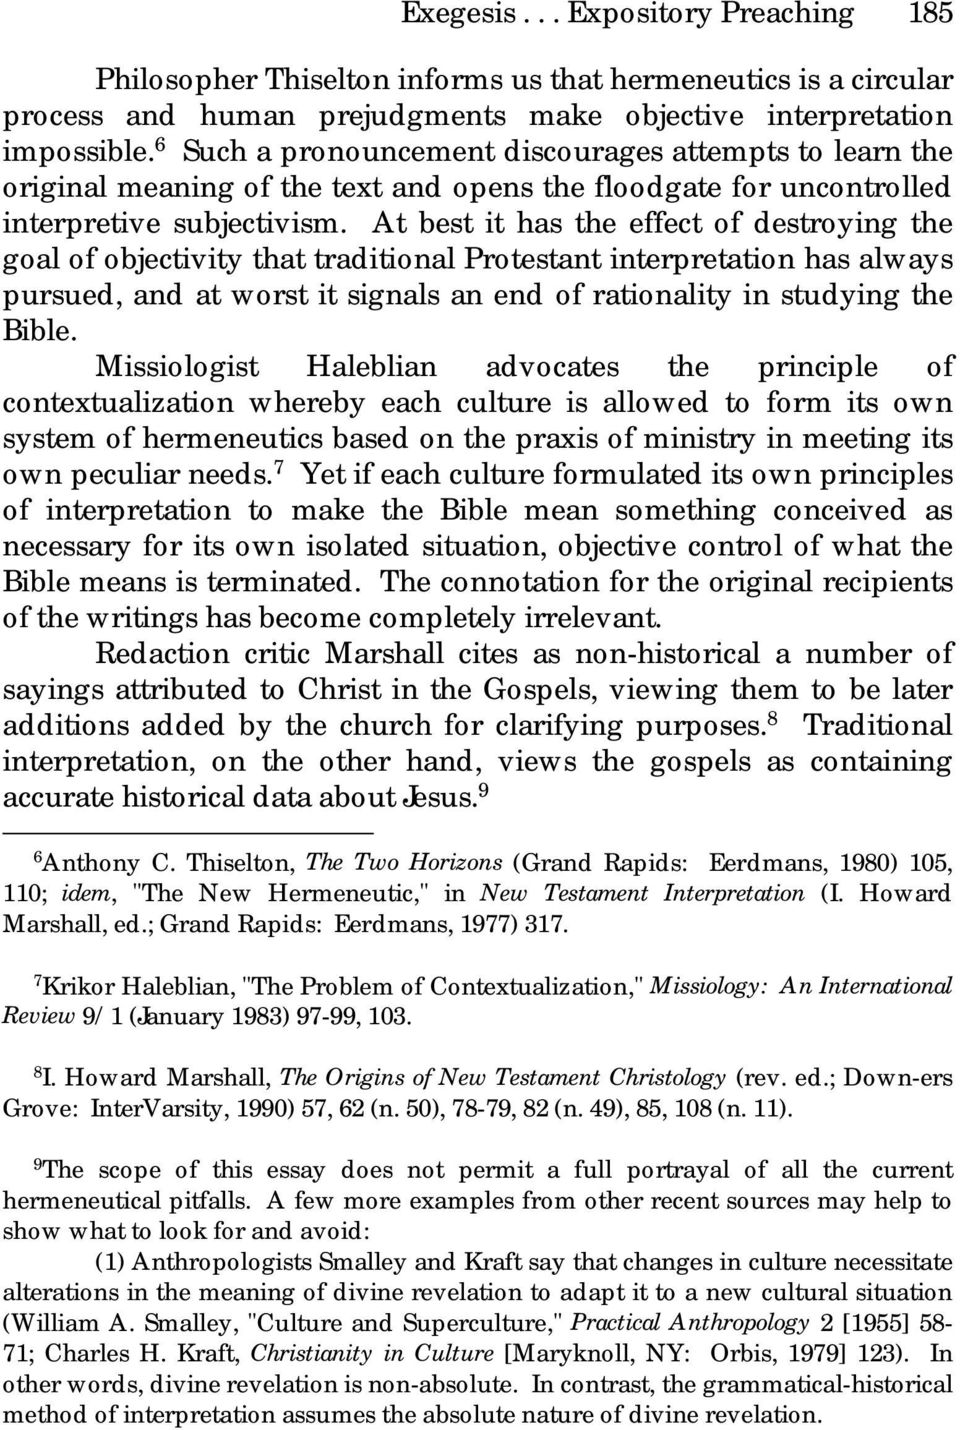 At best it has the effect of destroying the goal of objectivity that traditional Protestant interpretation has always pursued, and at worst it signals an end of rationality in studying the Bible.